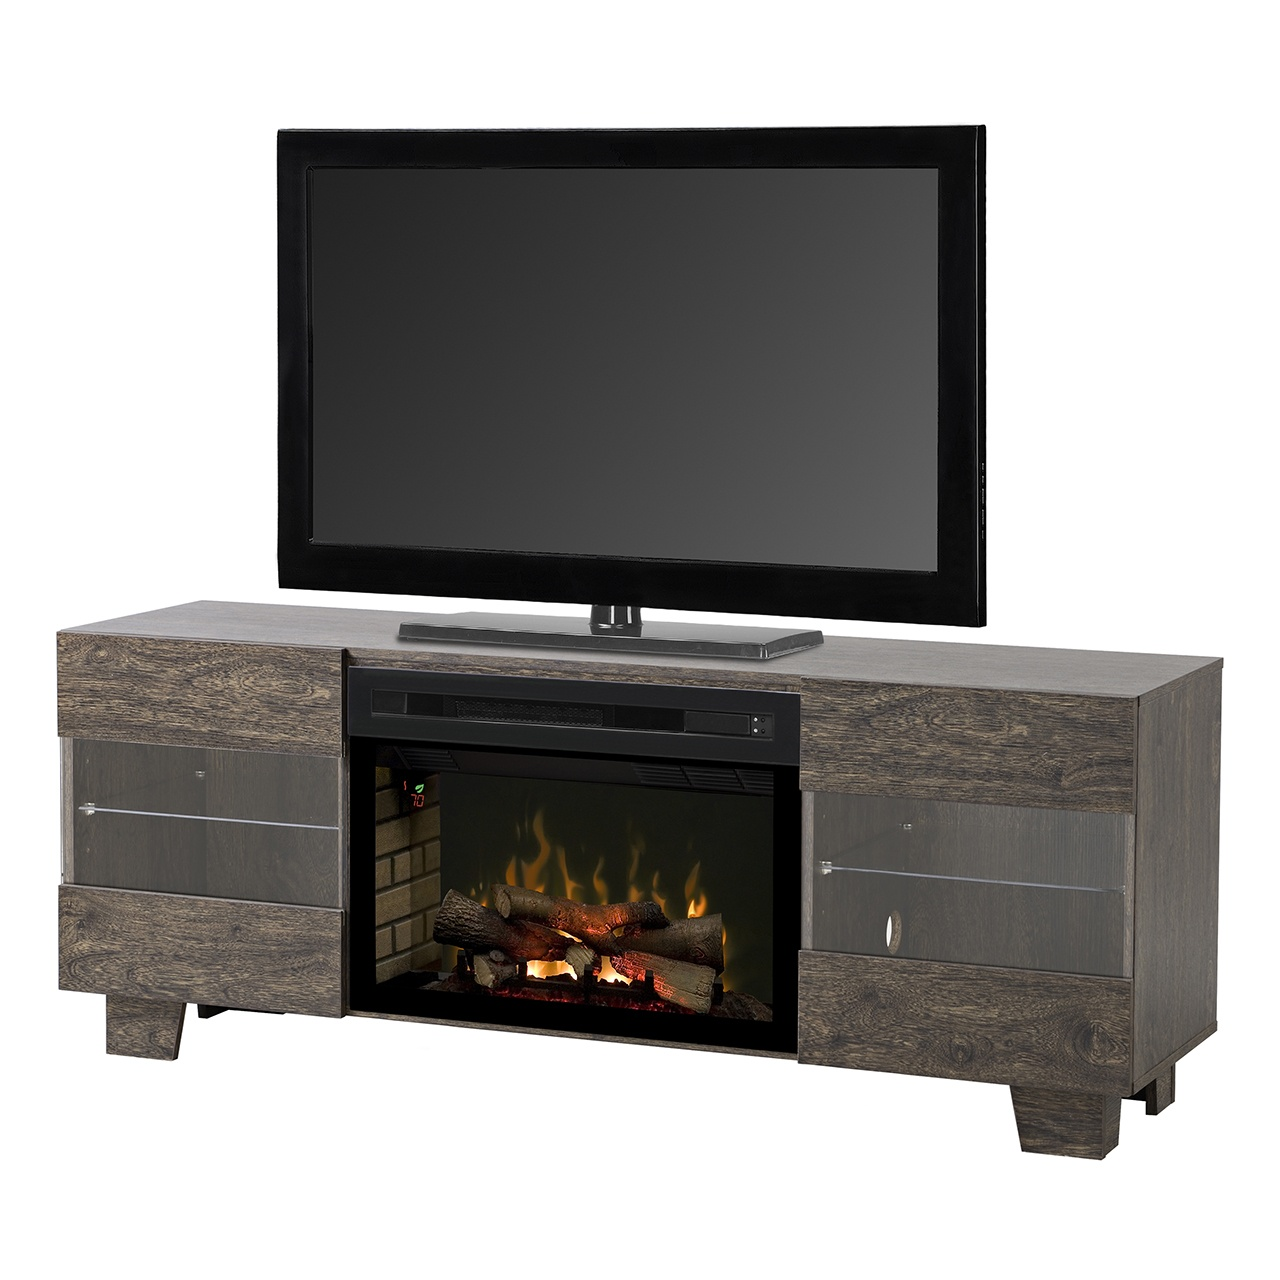 Dimplex Max Gds25ld 1651eb Electric Fireplace Media Console Electric Fireplaces